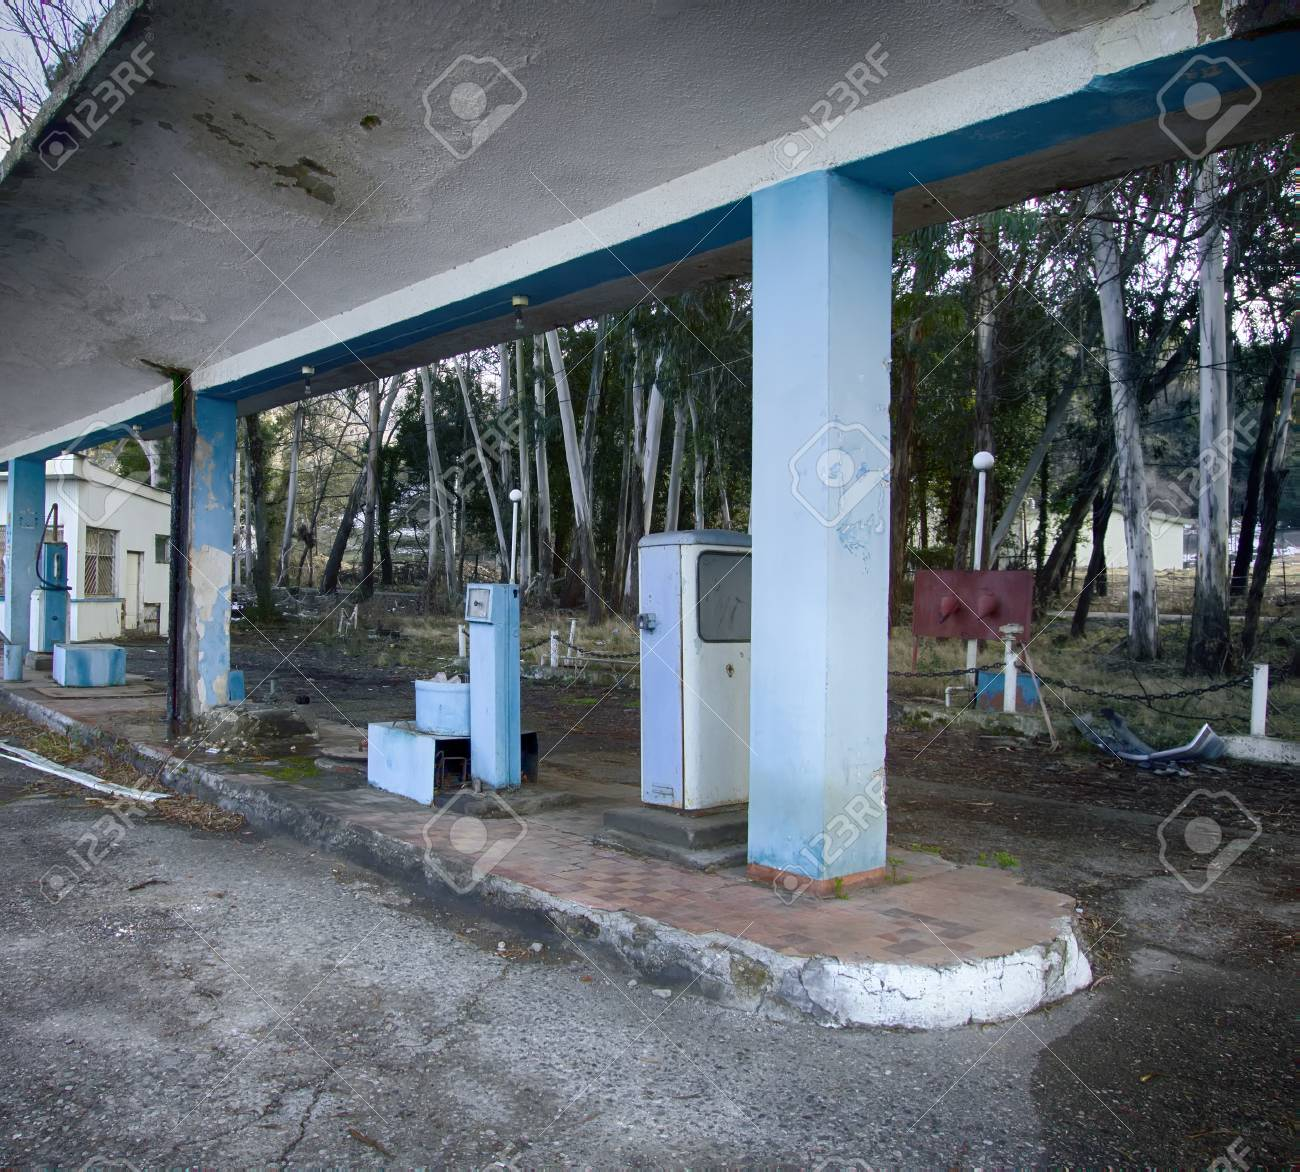 Old Abandoned Filling Station Fuel Station Gas Station On Secondary Stock Photo Picture And Royalty Free Image Image 93191718